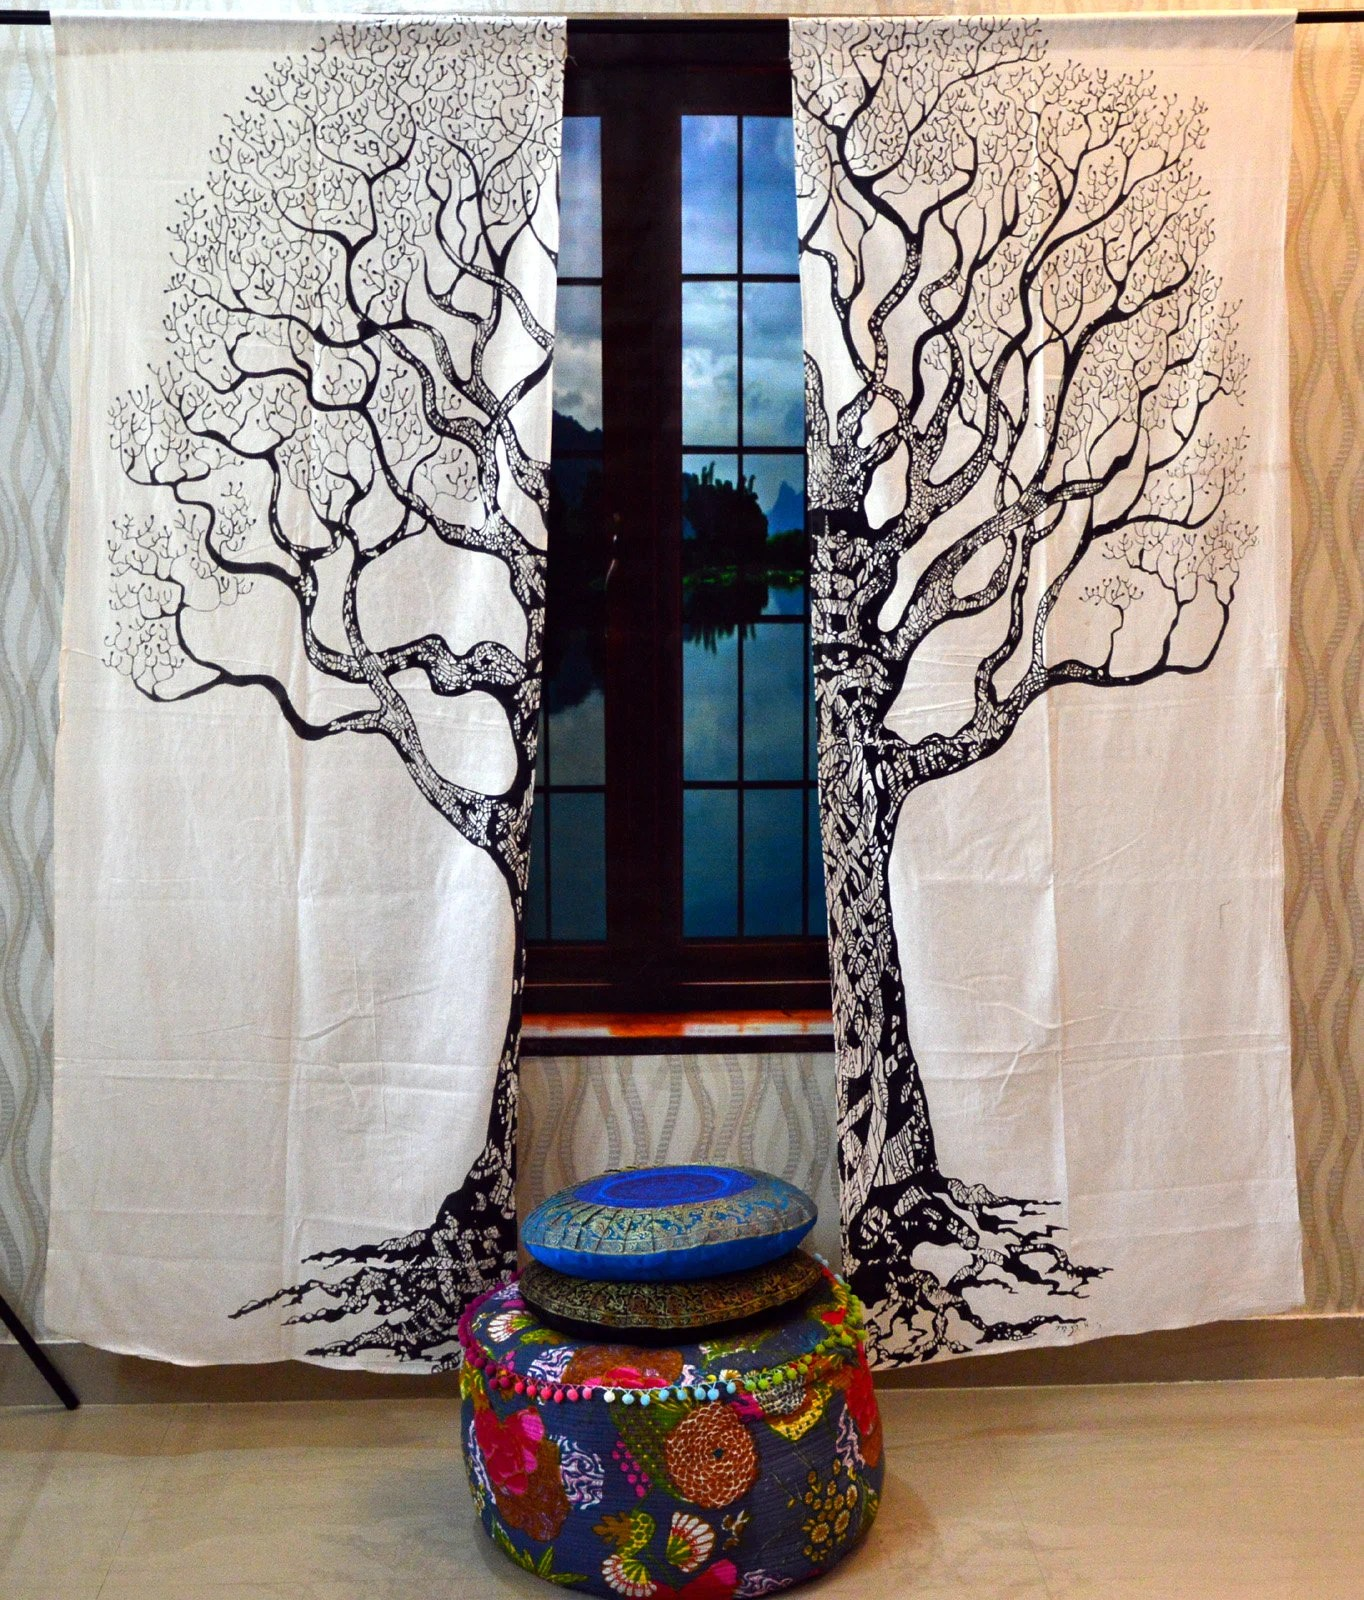 Tree Of Life Curtains Living Room Curtain Boho Black And White Tapestry Window Dorm Curtains For Rods Drapes Valances Window Treatments Art